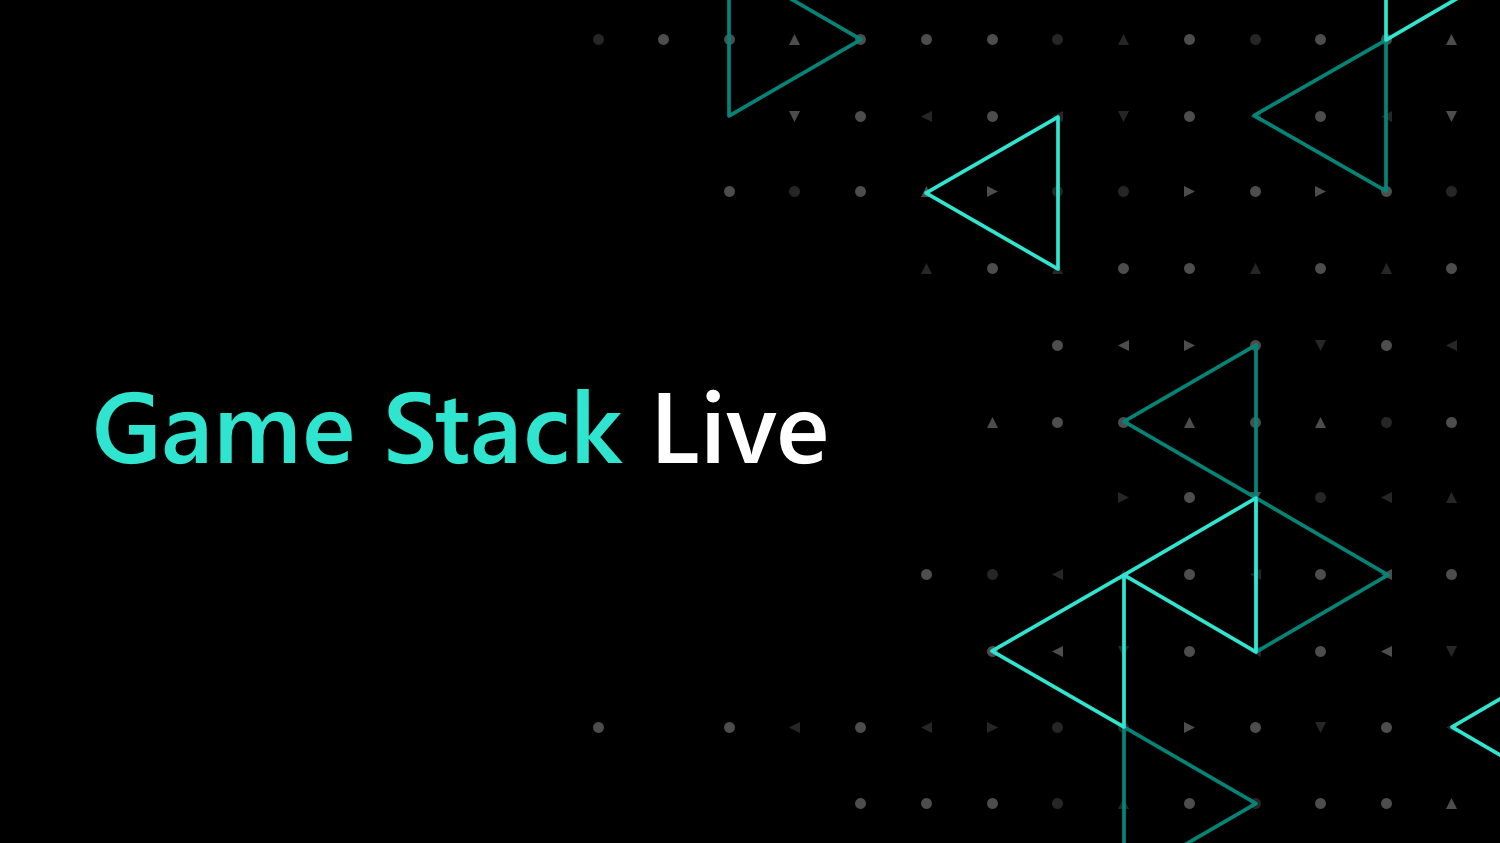 Check out Game Stack Live